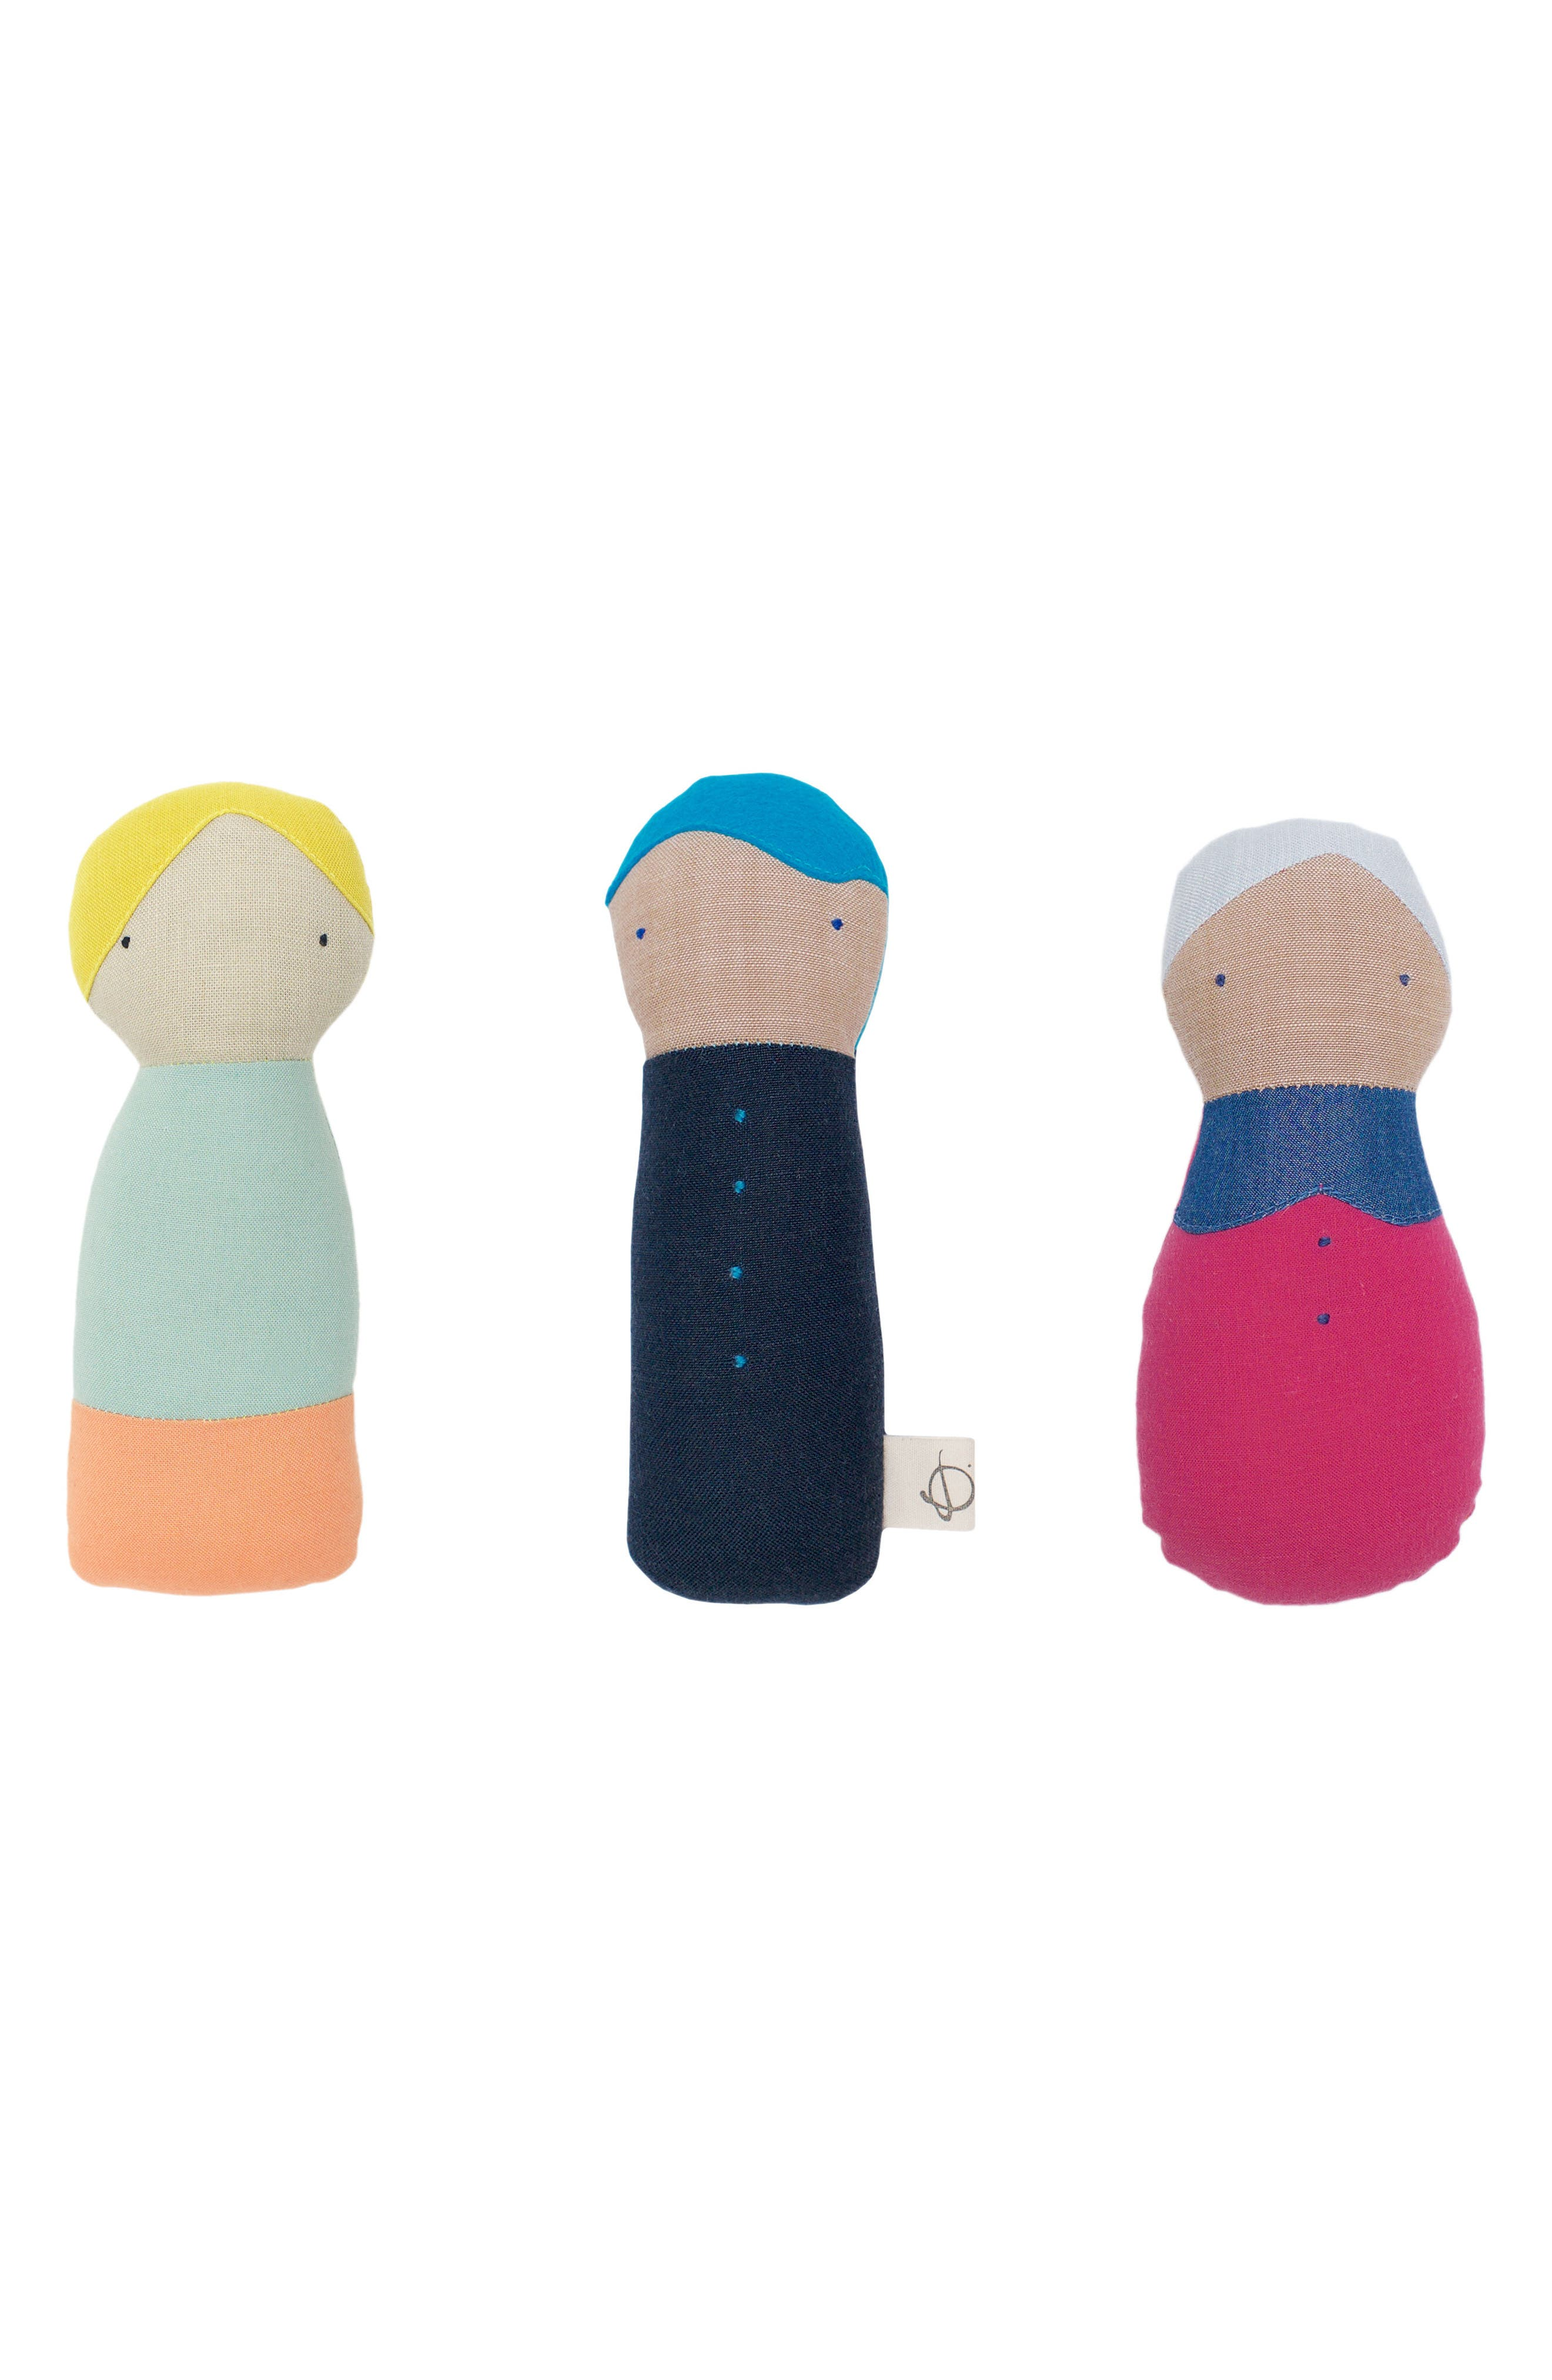 ouistitine x Pehr Little Peeps Rattle,                             Alternate thumbnail 4, color,